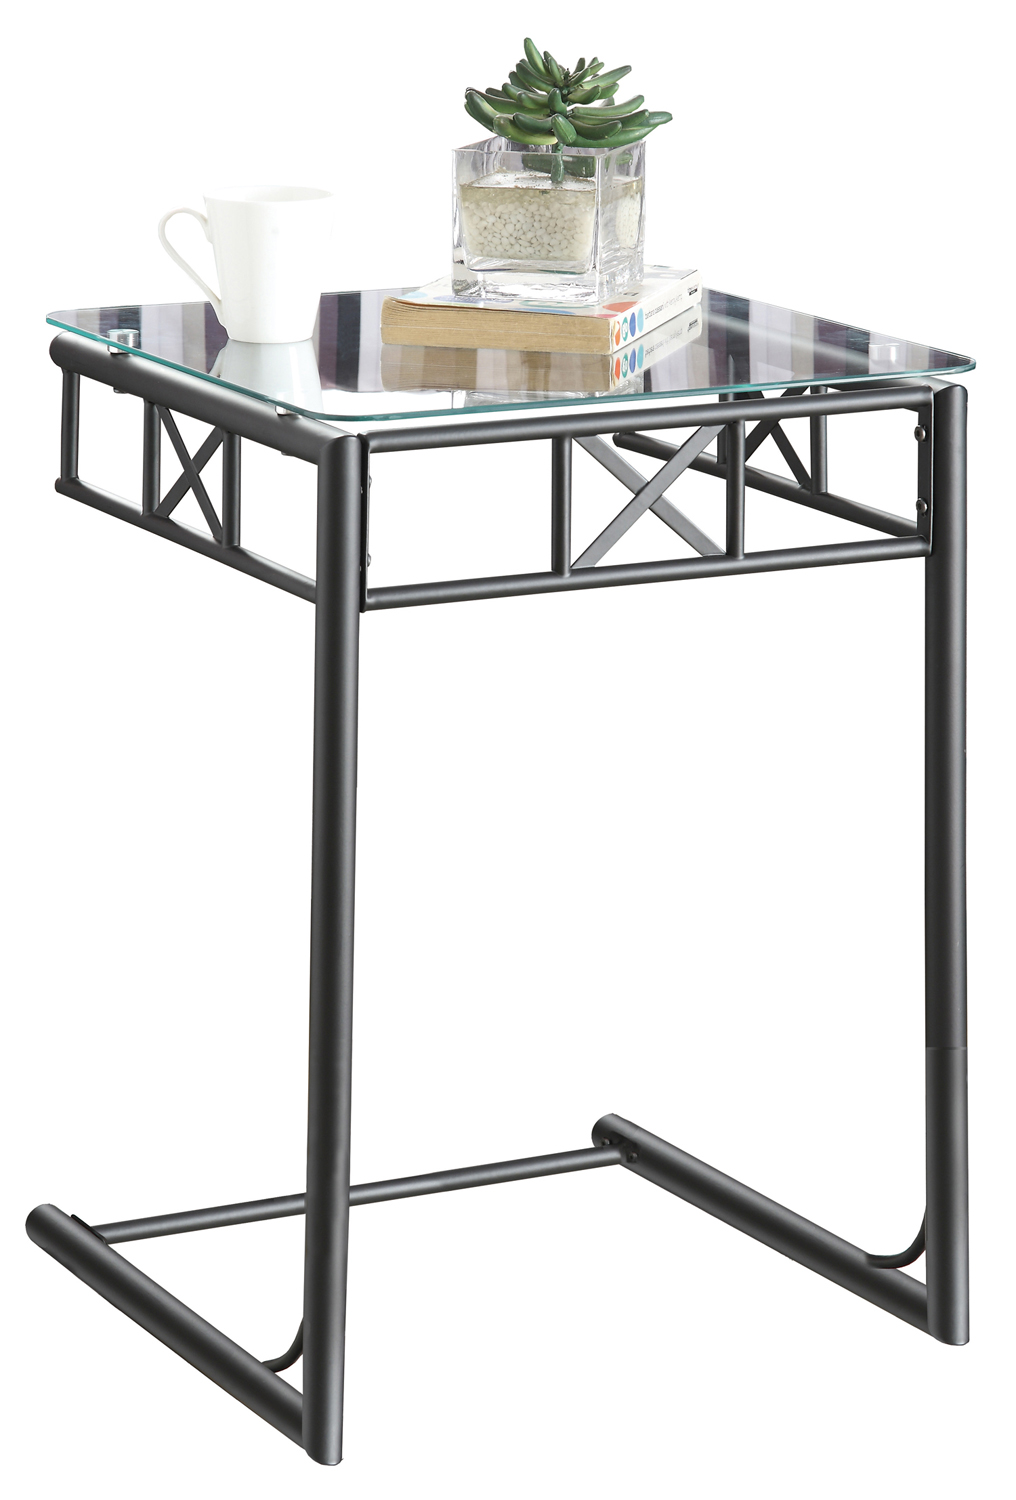 monarch specialties products bentwood accent table with tempered glass black metal ashley furniture sectional couch sams patio unfinished top round bedroom lamps usb edwards sea